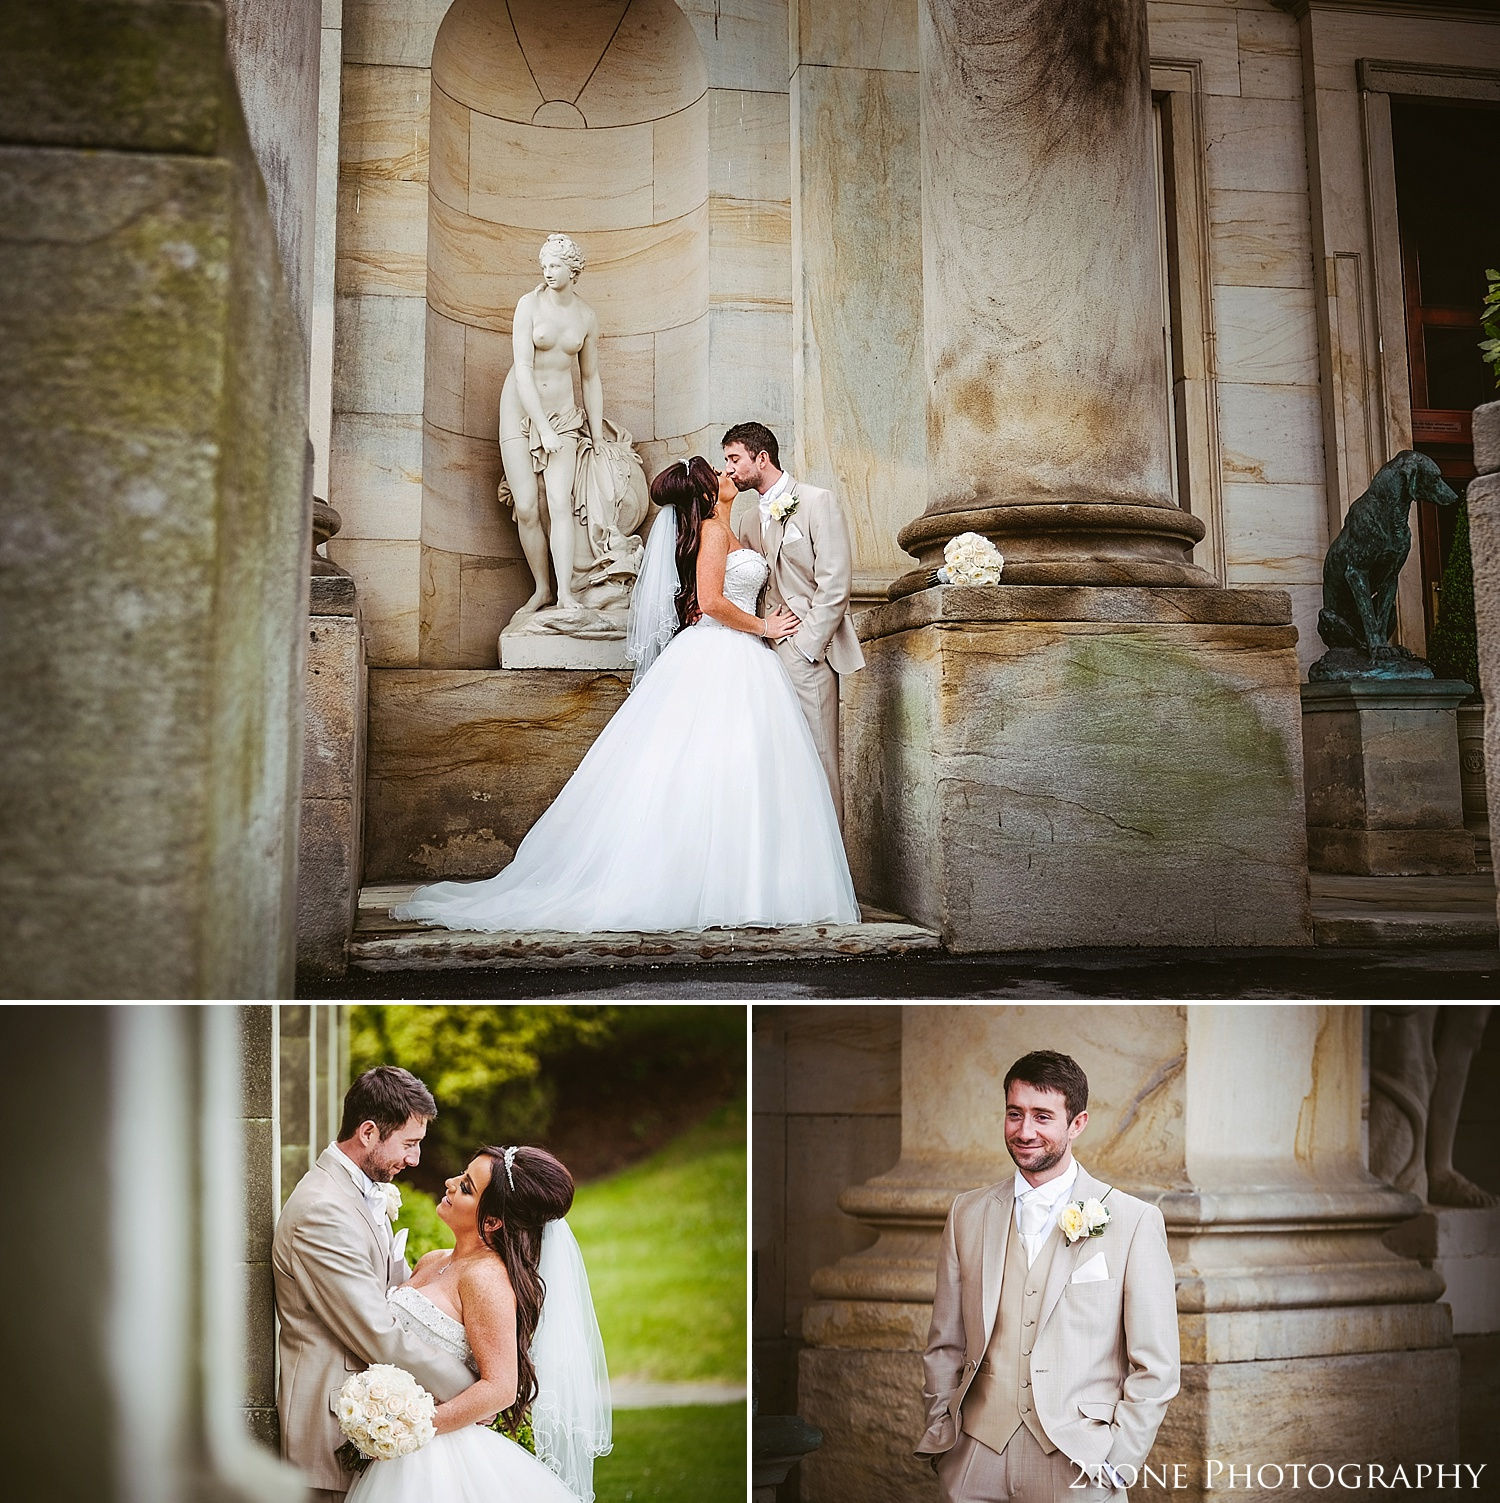 Romantic wedding photos at Wynyard Hall by Newcastle and Durham based Wedding Photographer www.2tonephotography.co.uk